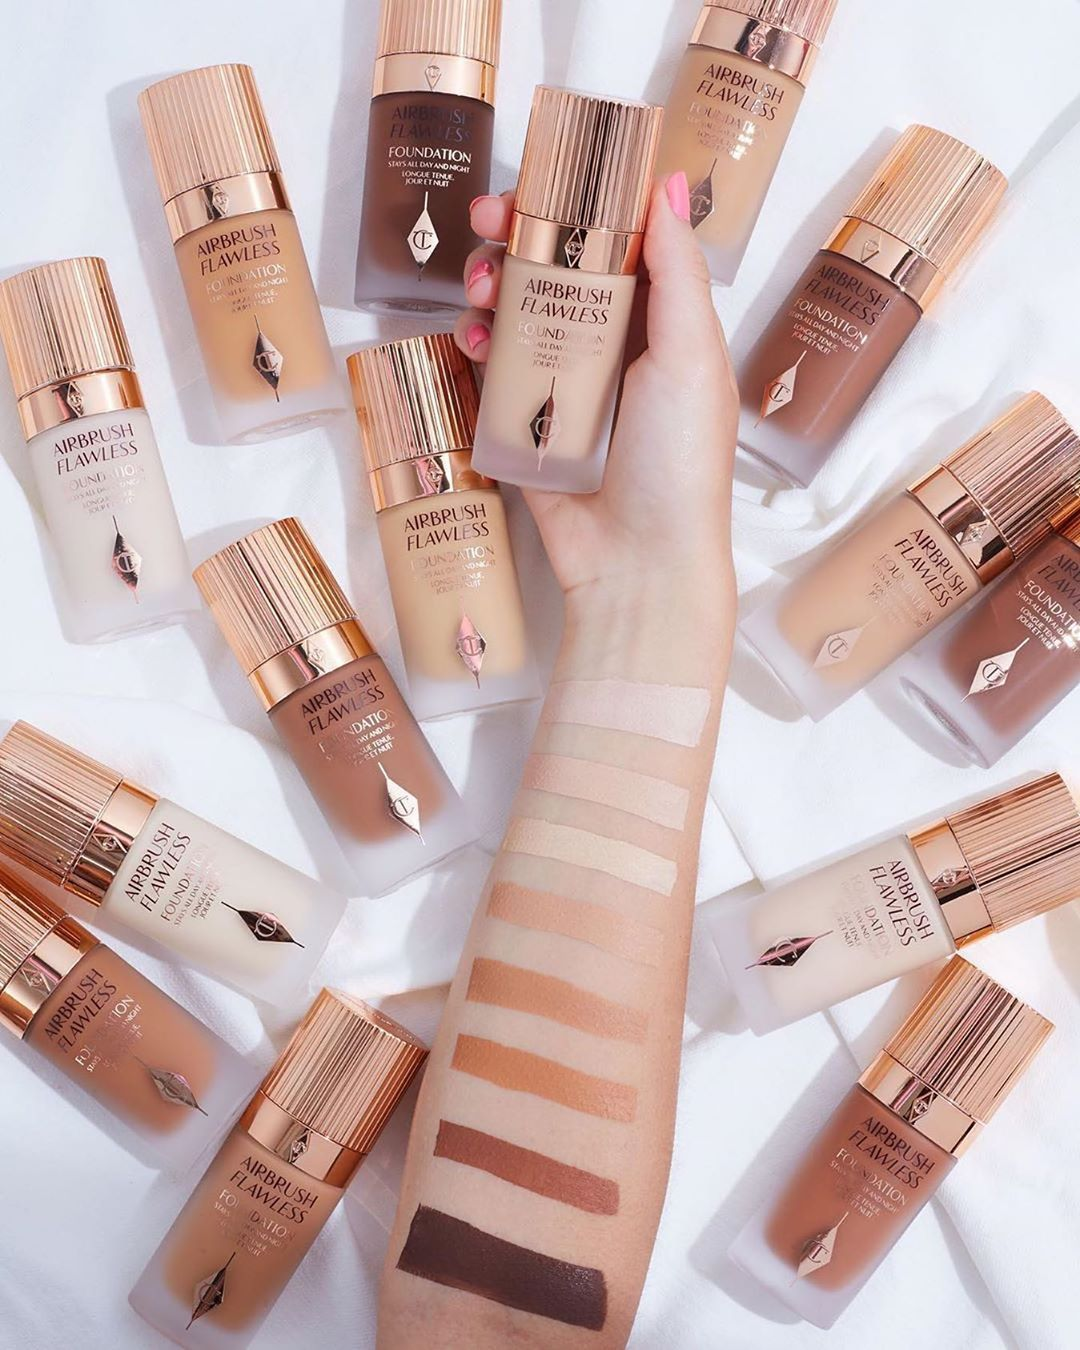 Charlotte Tilbury Airbrush Flawless Foundation Is Finally Here